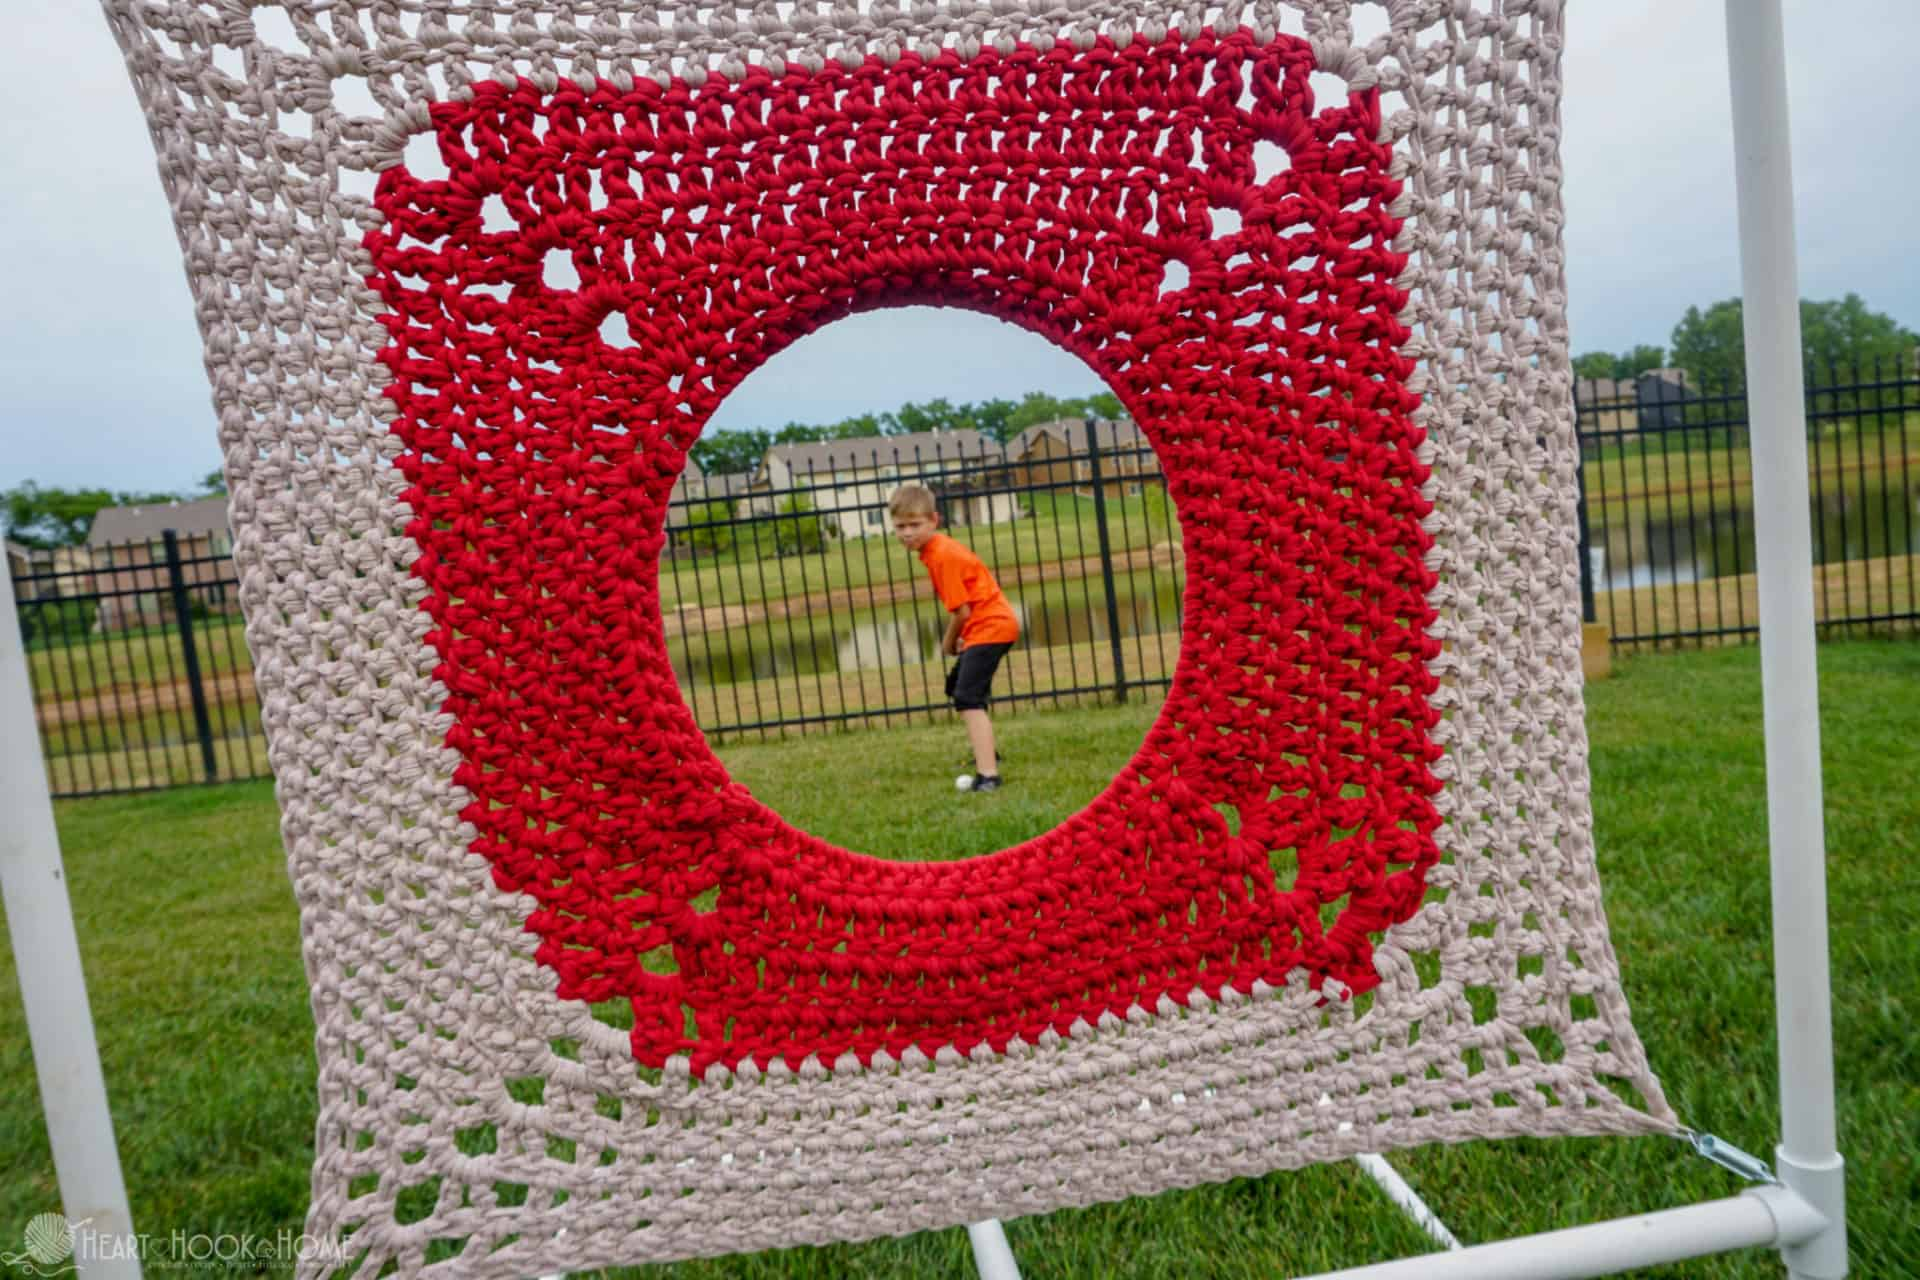 How to crochet a target practice for kids